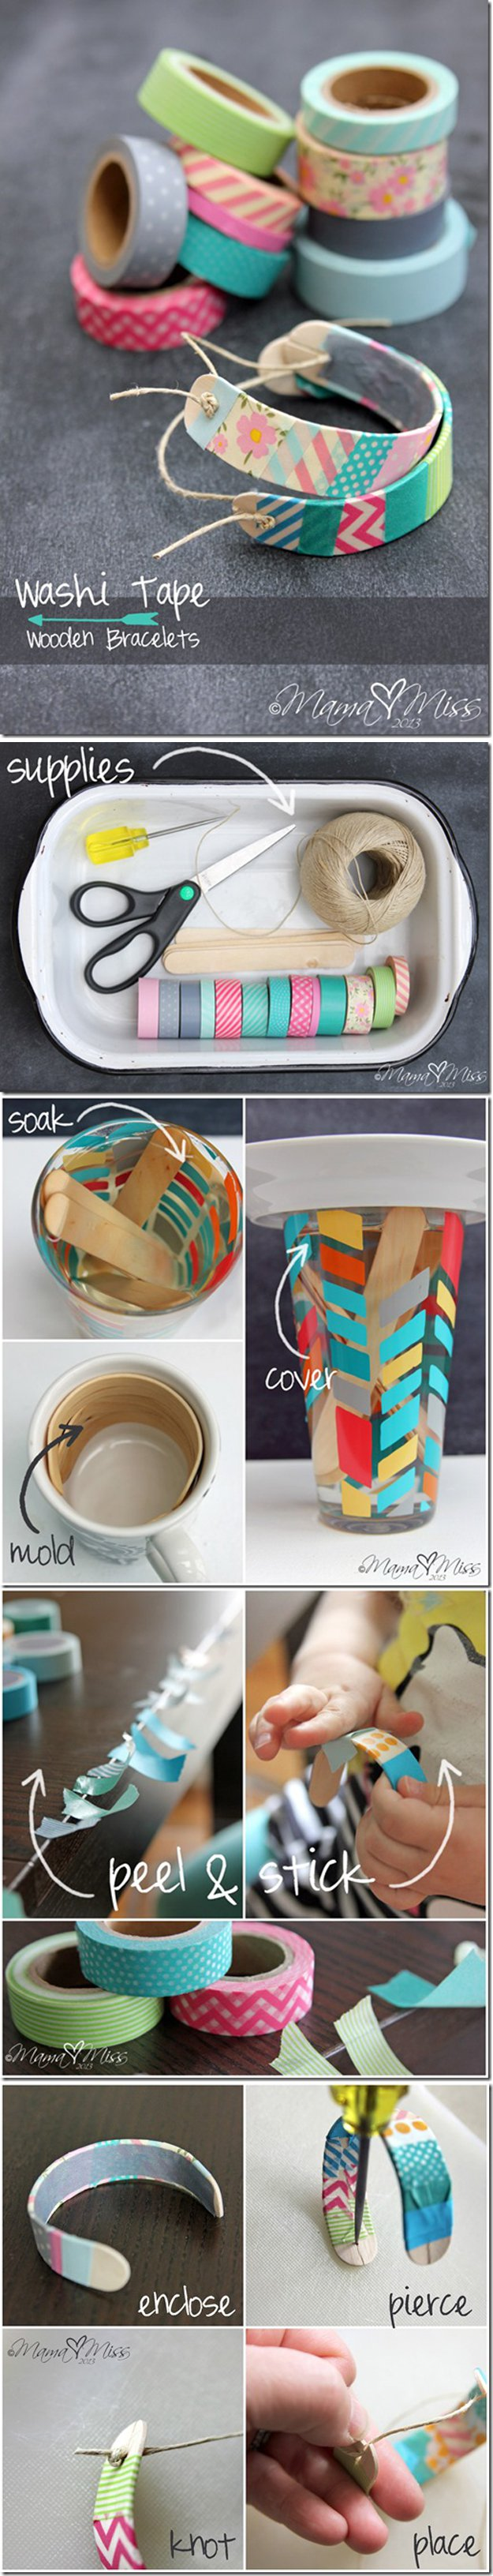 Washi Tape Crafts - DIY Washi TApe Bracelets - Wall Art, Frames, Cards, Pencils, Room Decor and DIY Gifts, Back To School Supplies - Creative, Fun Craft Ideas for Teens, Tweens and Teenagers - Step by Step Tutorials and Instructions http://diyprojectsforteens.com/washi-tape-crafts